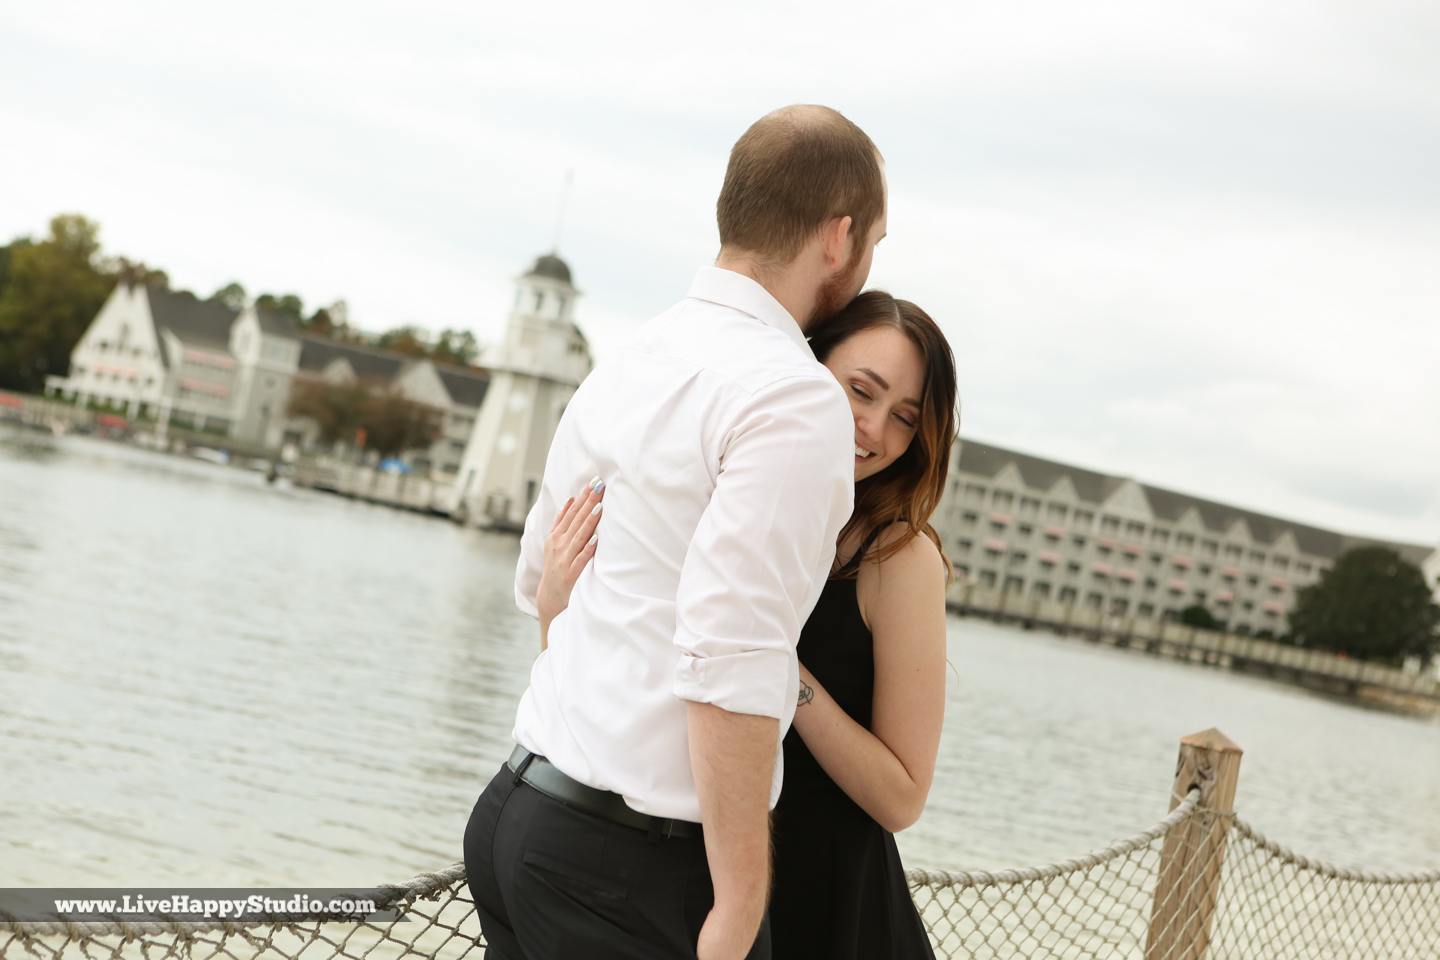 engagement-photographer-orlando-disney-photography-live-happy-studio-17.jpg